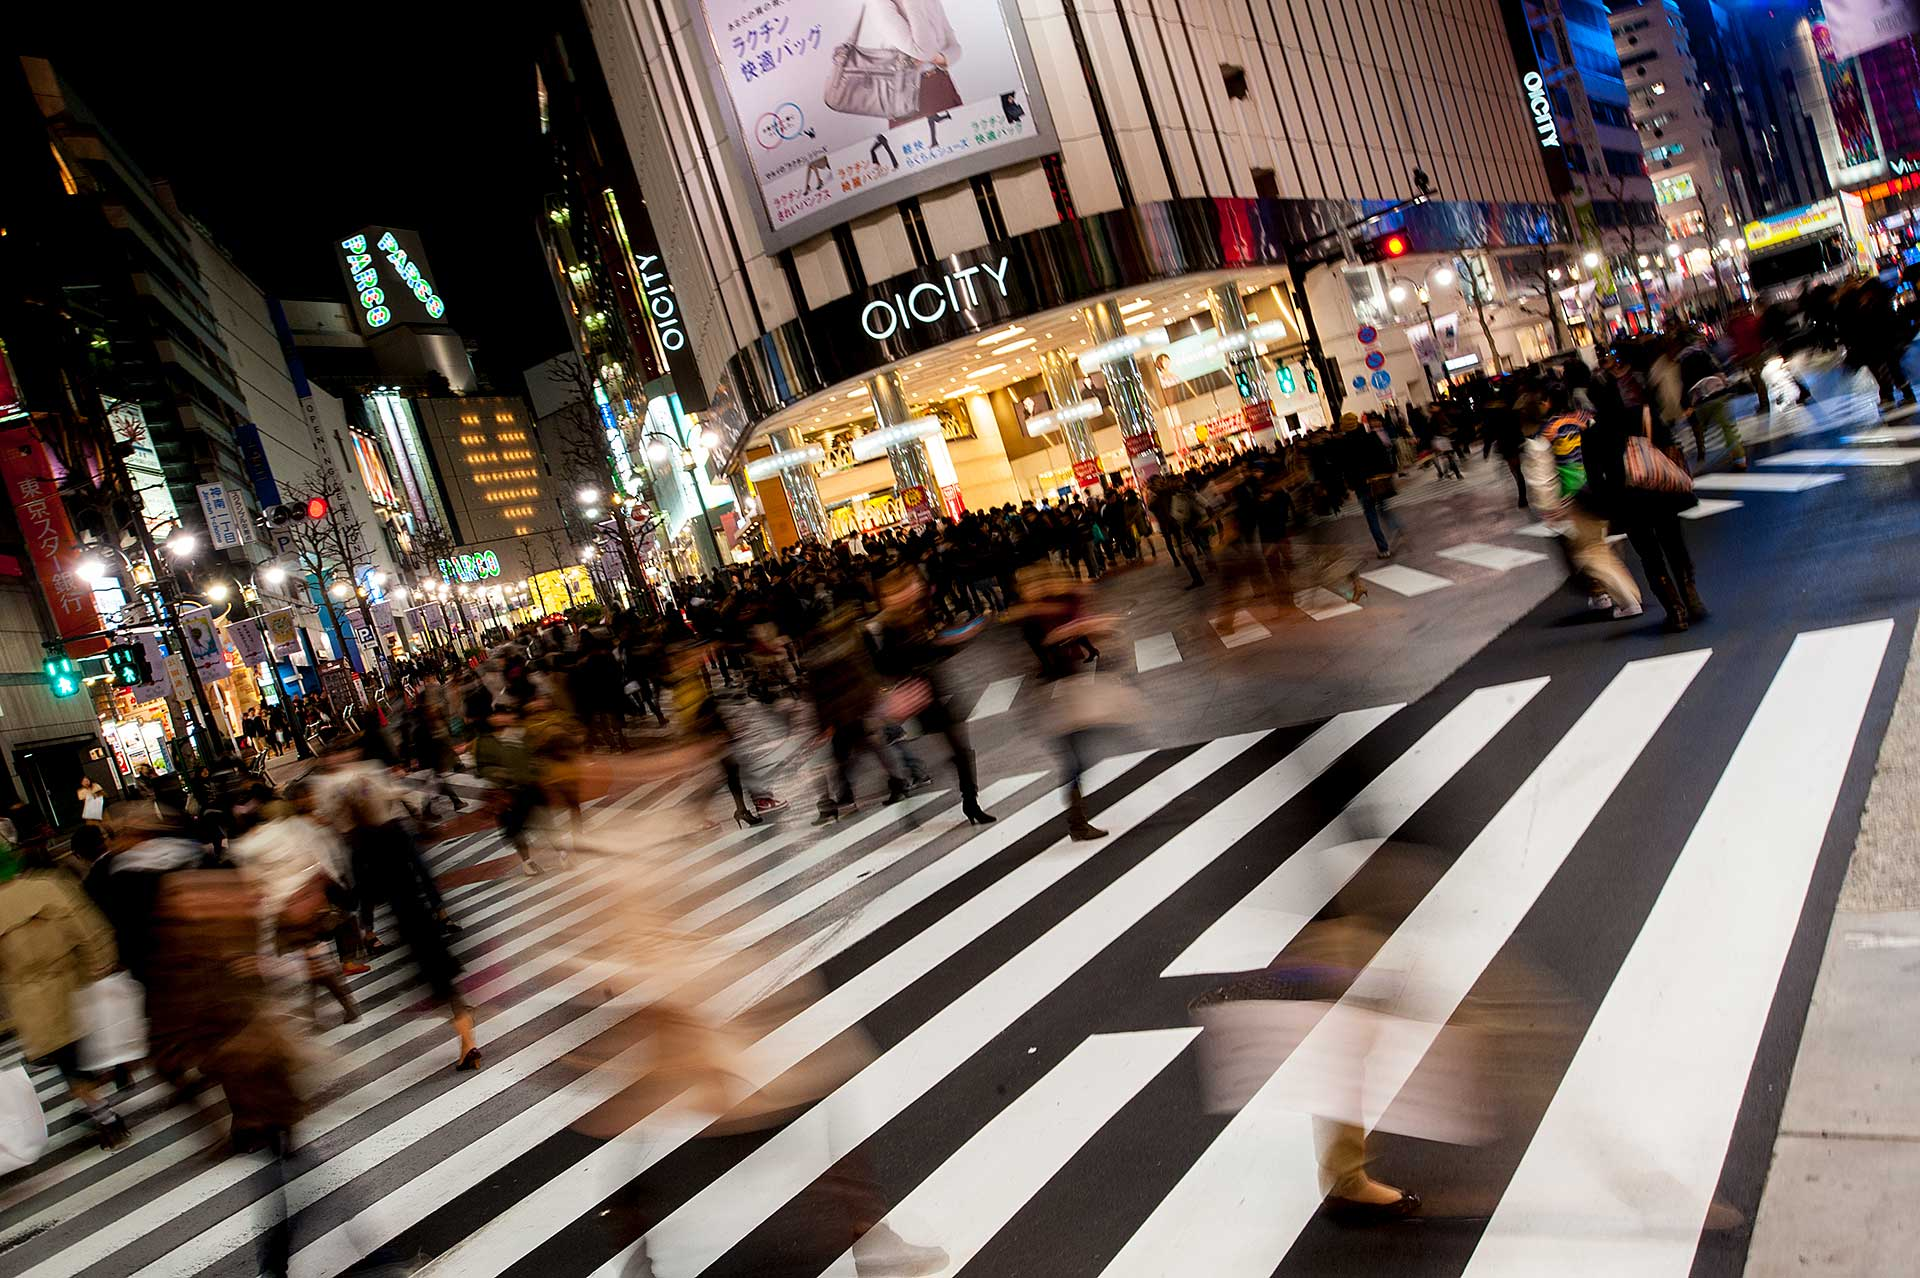 If you love busy, you'll love Tokyo shopping